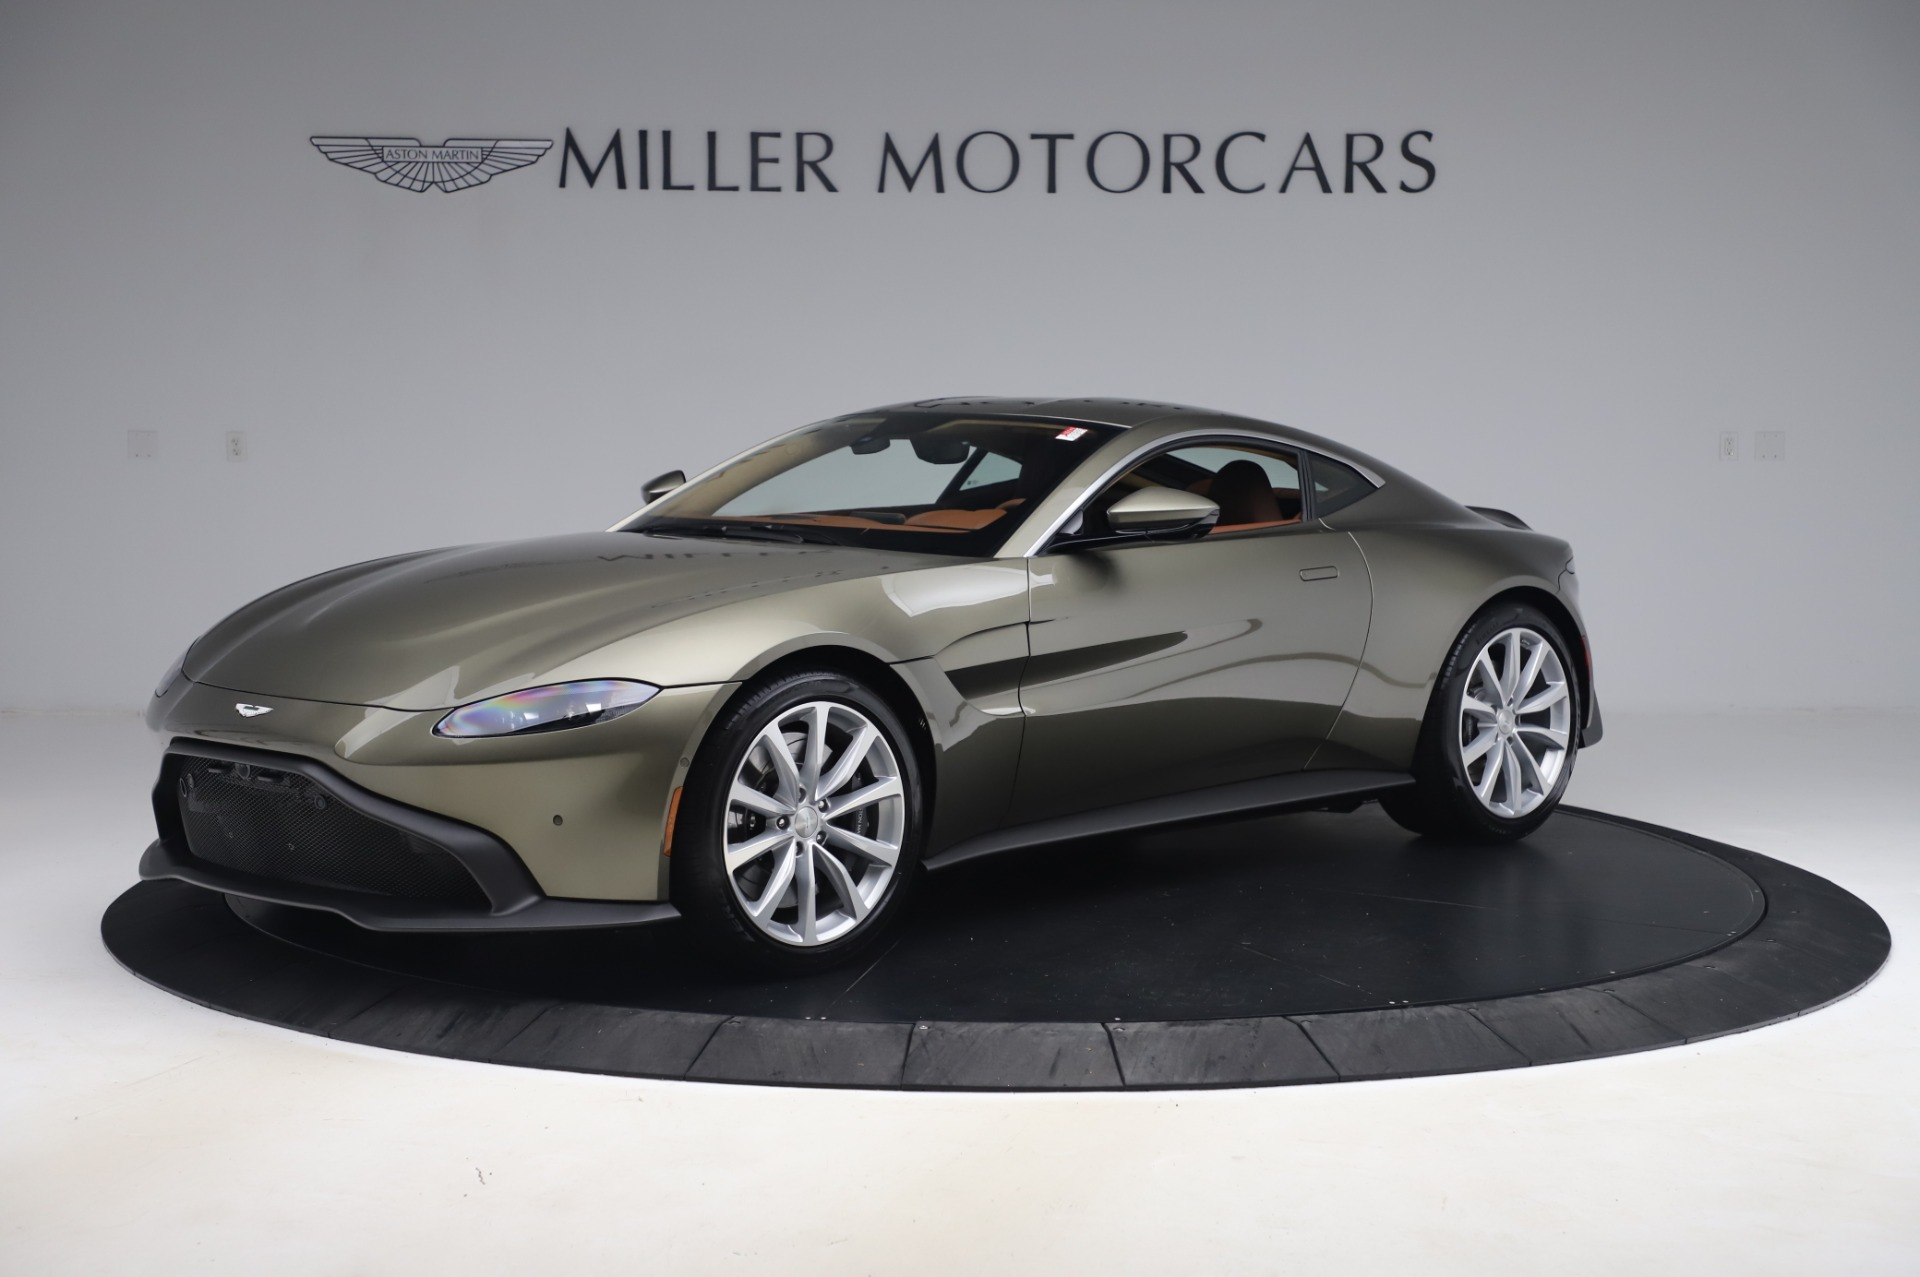 New 2020 Aston Martin Vantage Coupe for sale $180,450 at Rolls-Royce Motor Cars Greenwich in Greenwich CT 06830 1